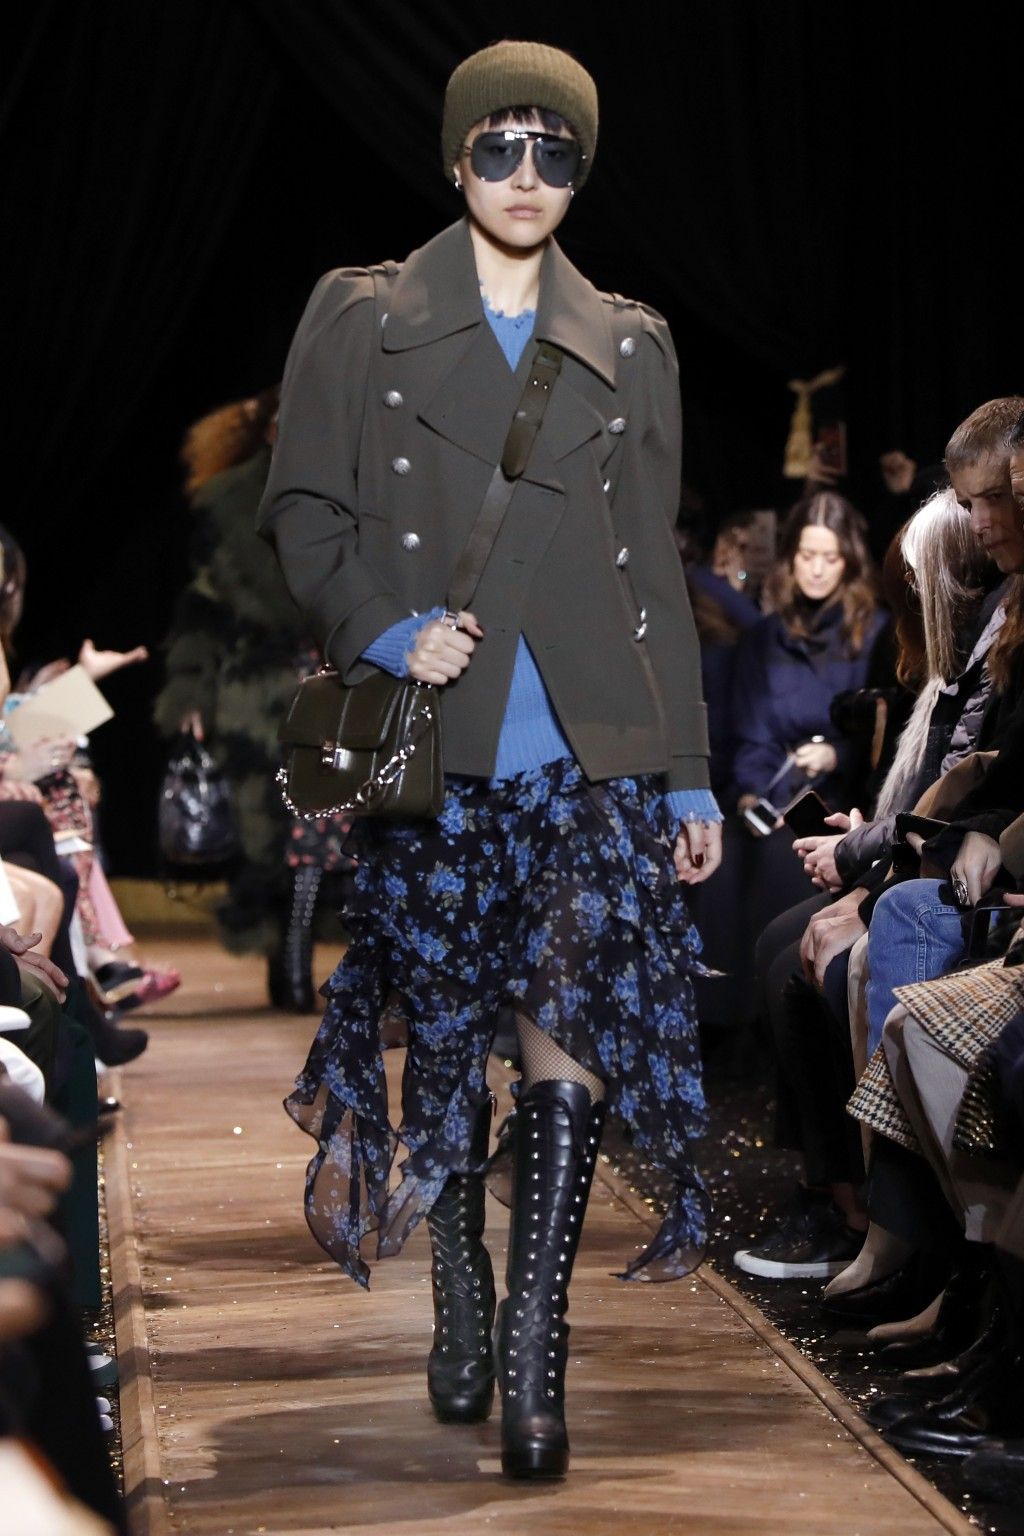 2a2a5a3ea184 The Michael Kors collection is modeled during Fashion Week in New York